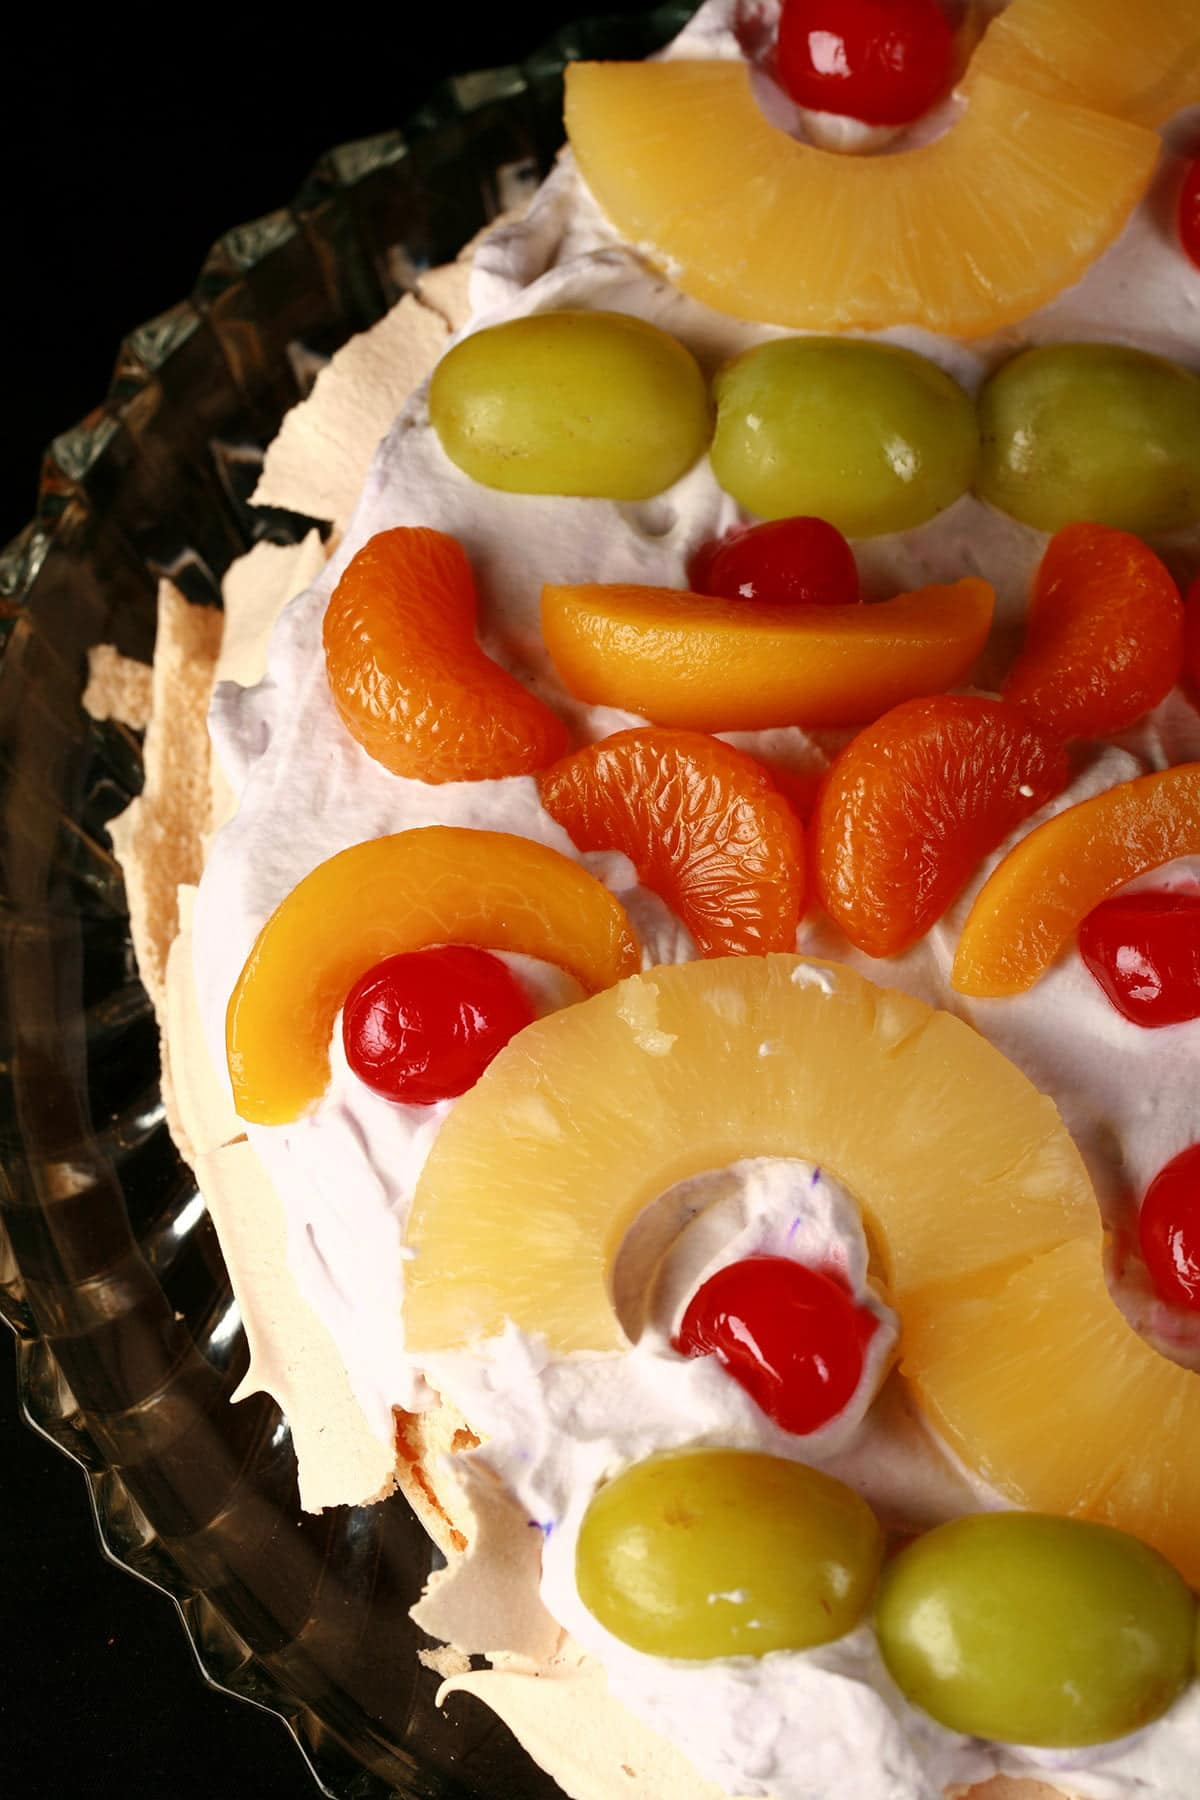 A close up view of an Easter Egg themed pavlova.